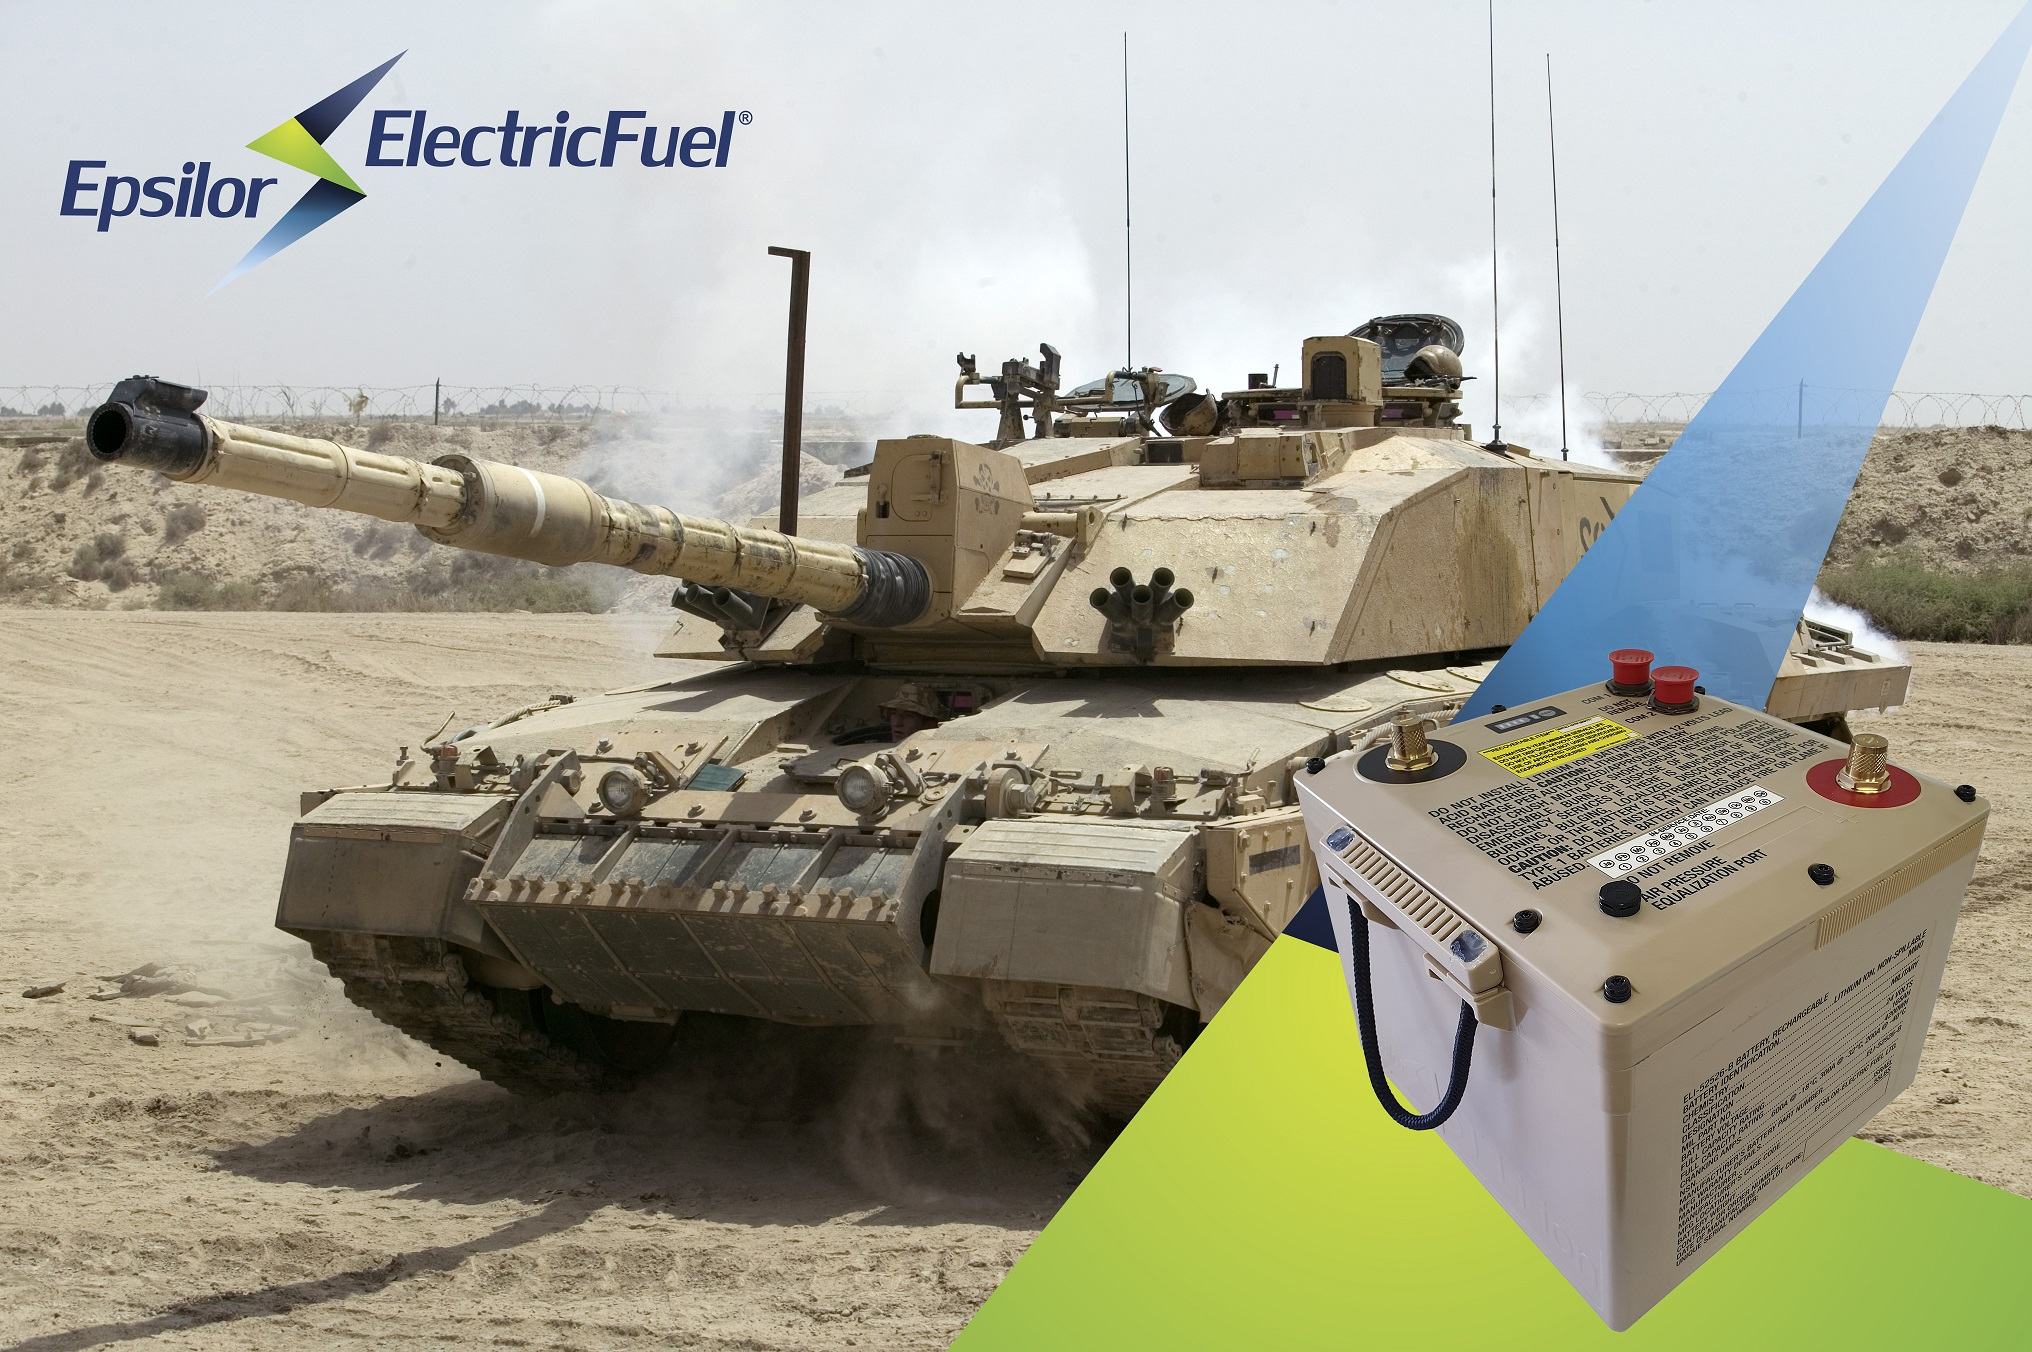 Epsilor's Li-Ion 6T Battery in Evaluation by 10 Military and Defense Customers